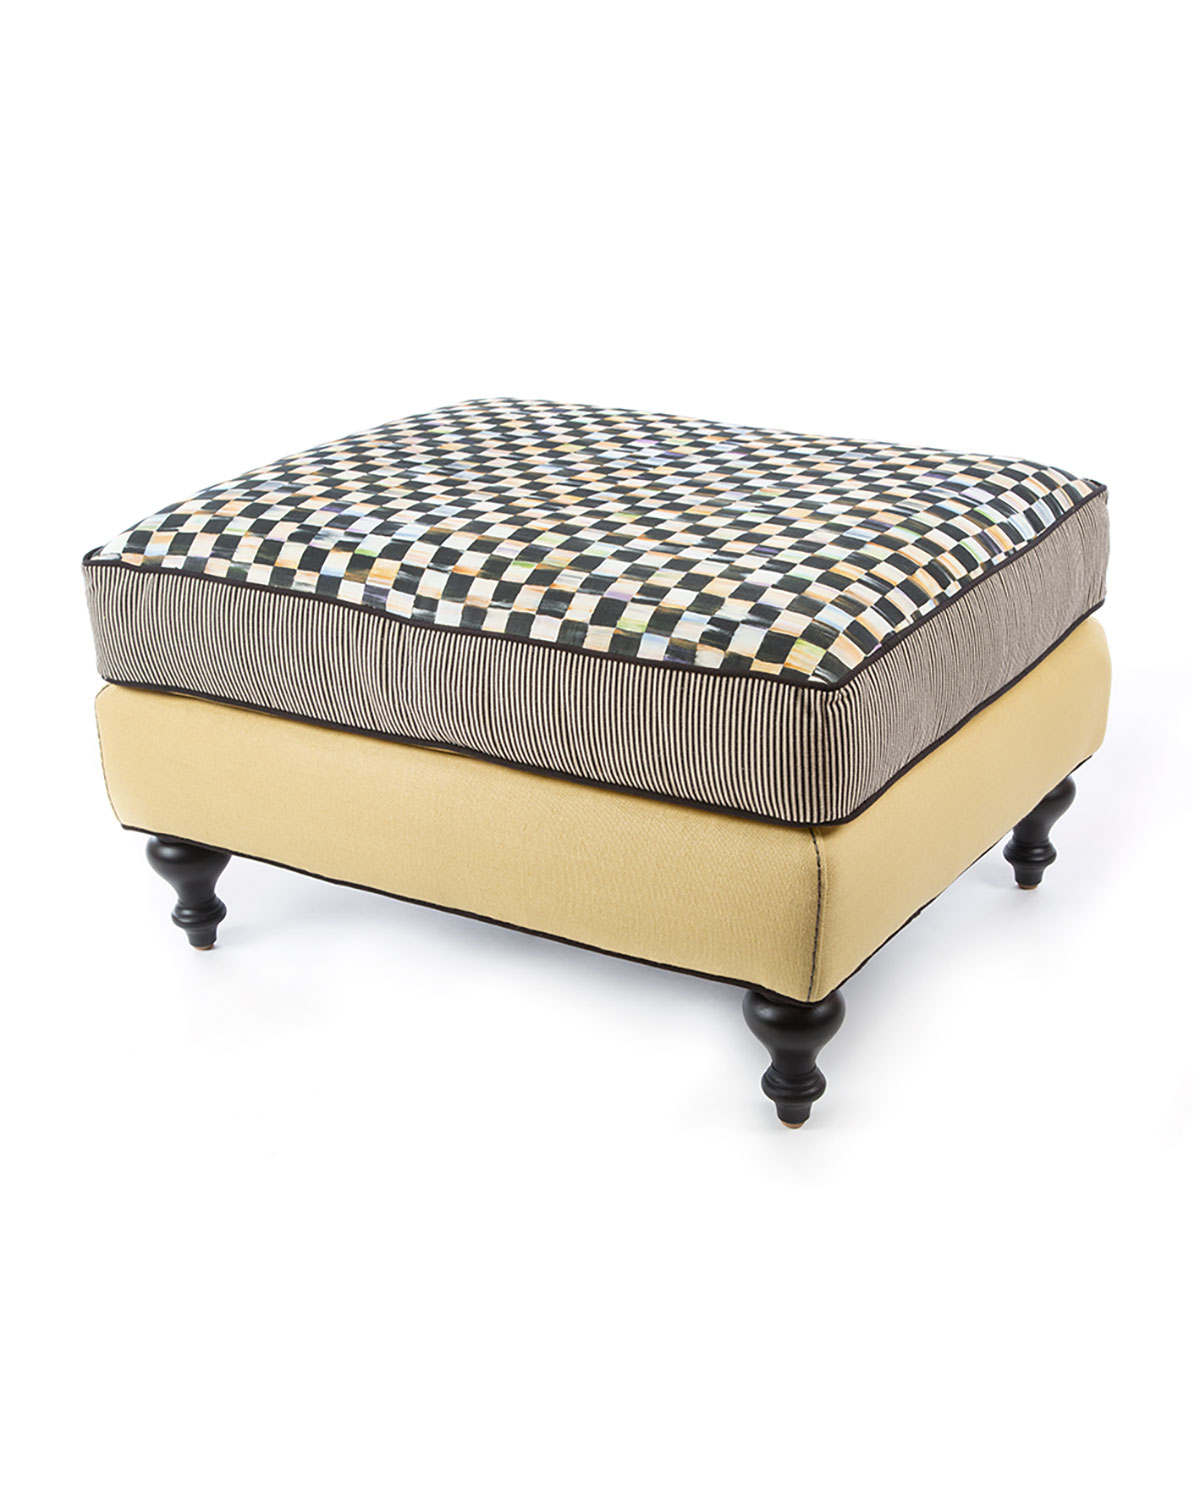 Courtly Check Underpinnings/Cornsilk Ottoman